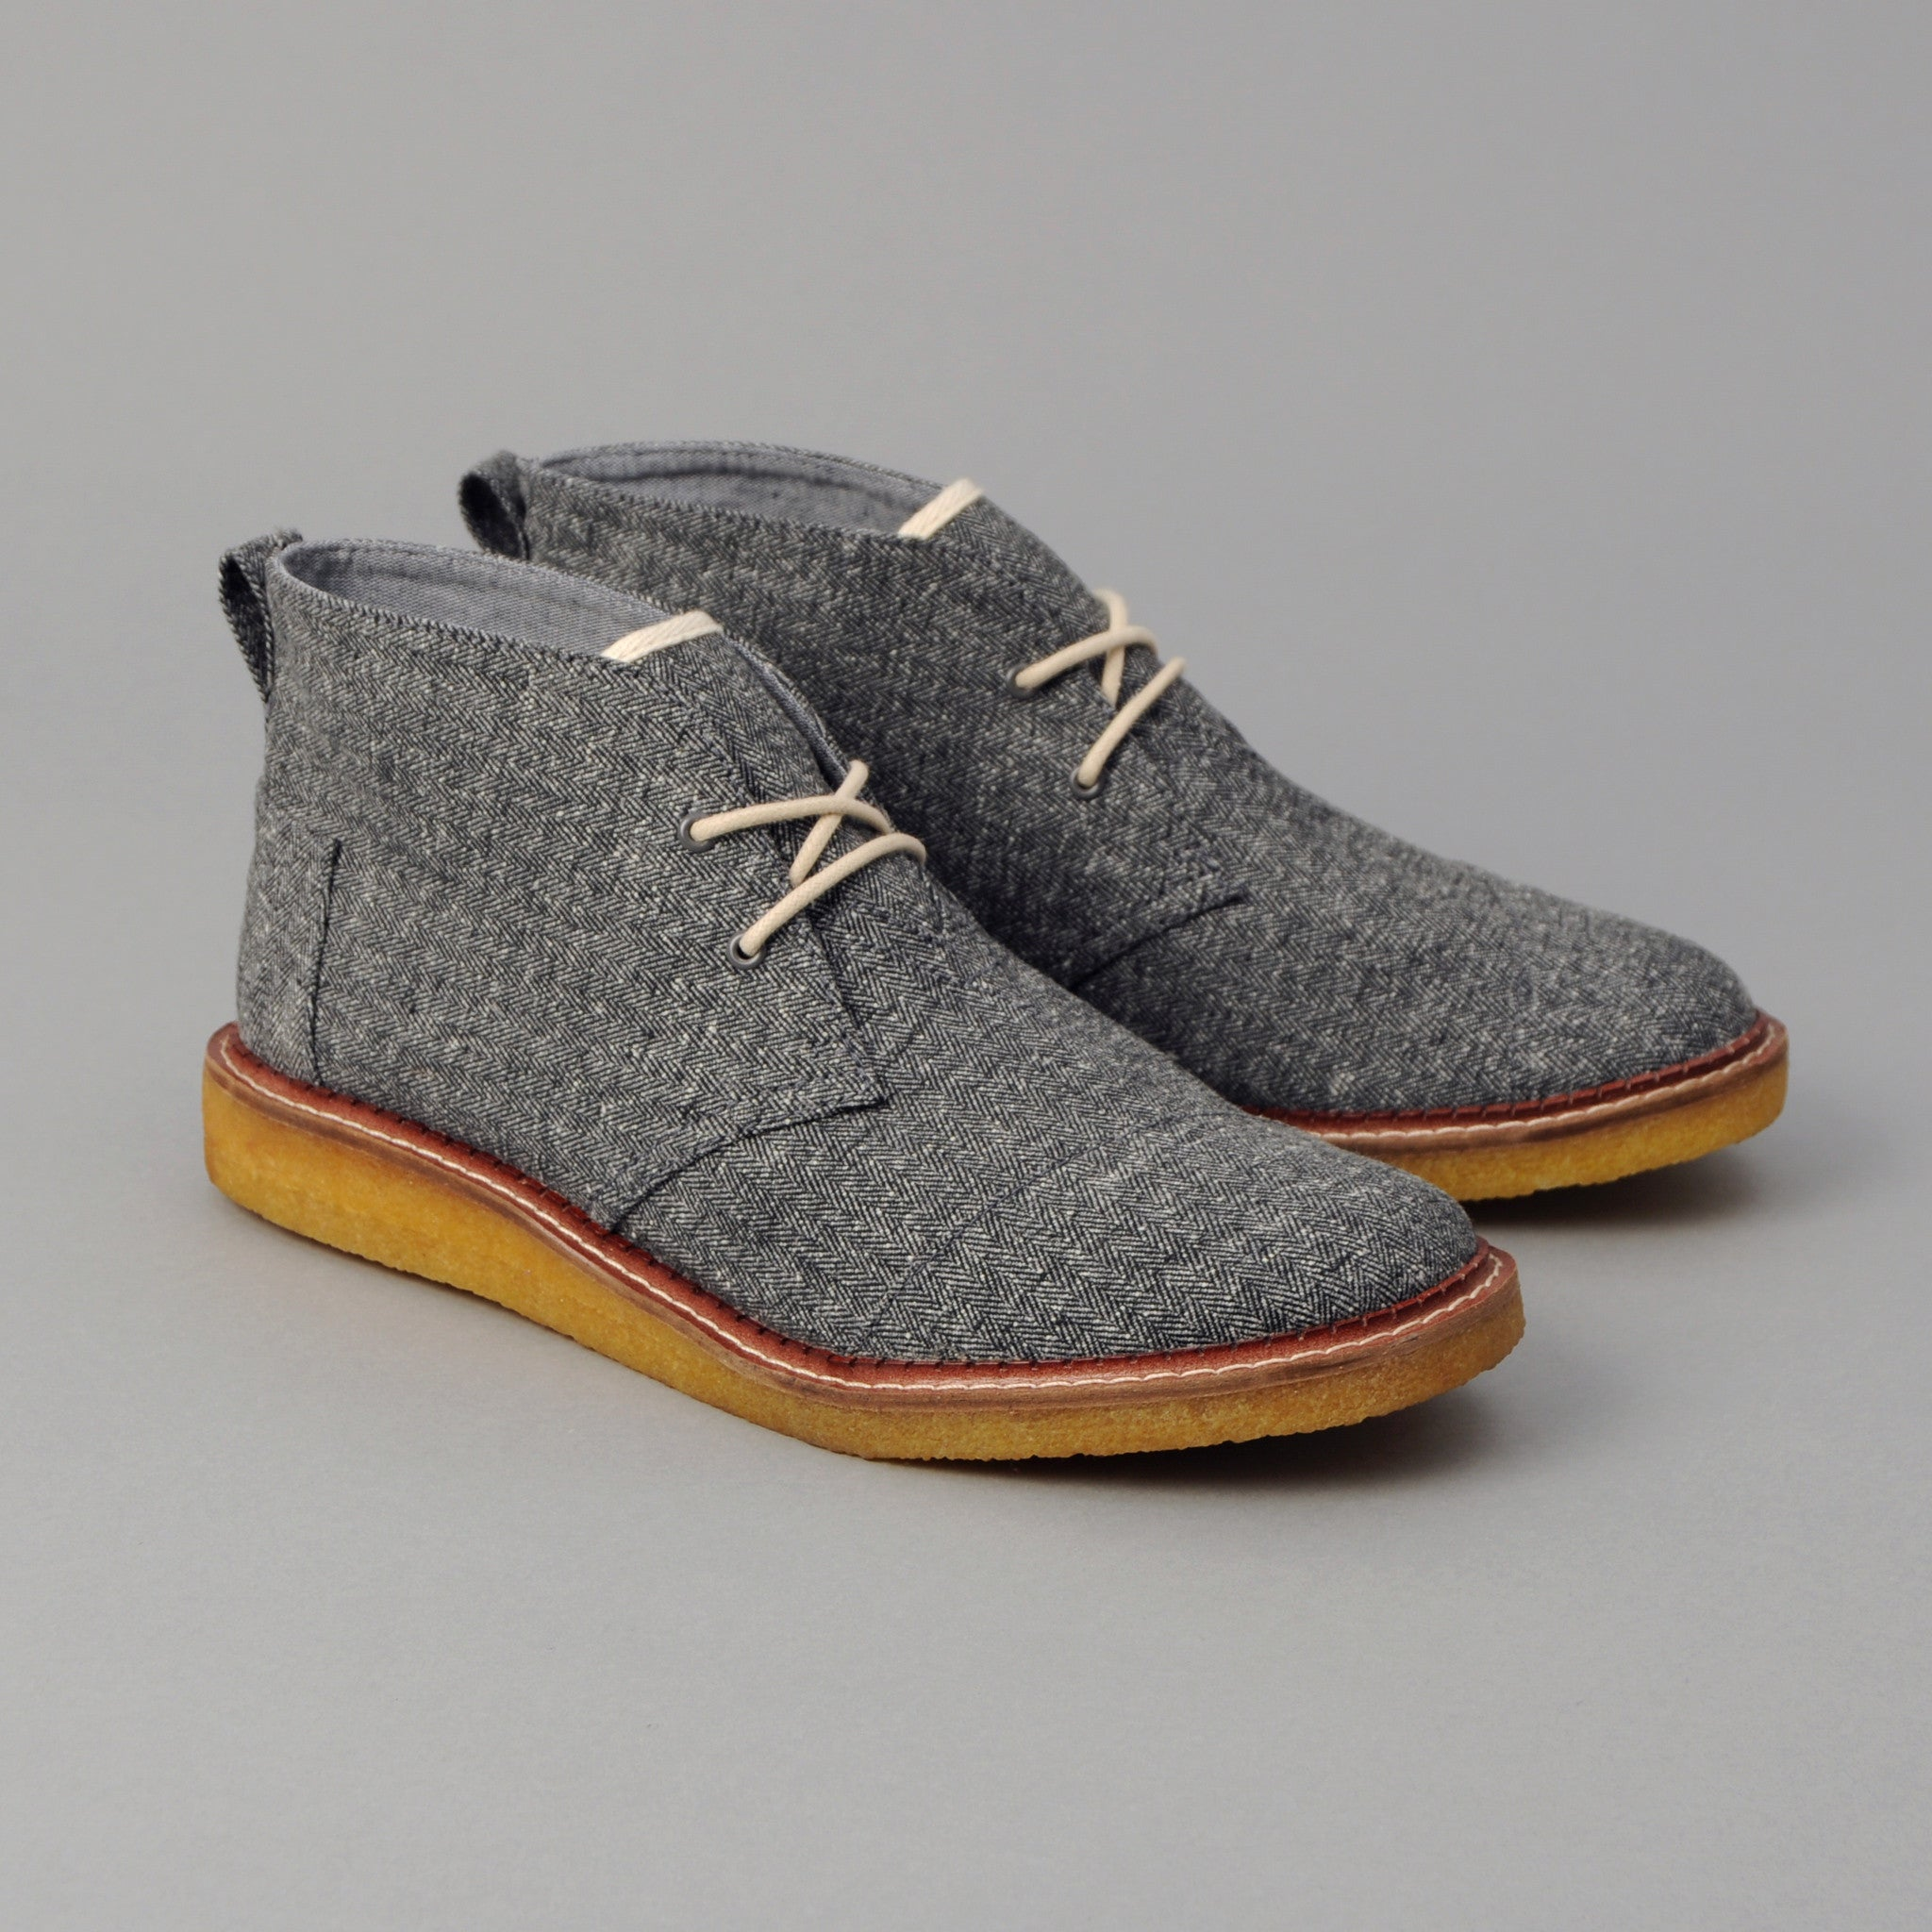 TOMS - TOMS x The Hill-Side Men's Mateo Chukka, Grey Herringbone Tweed -